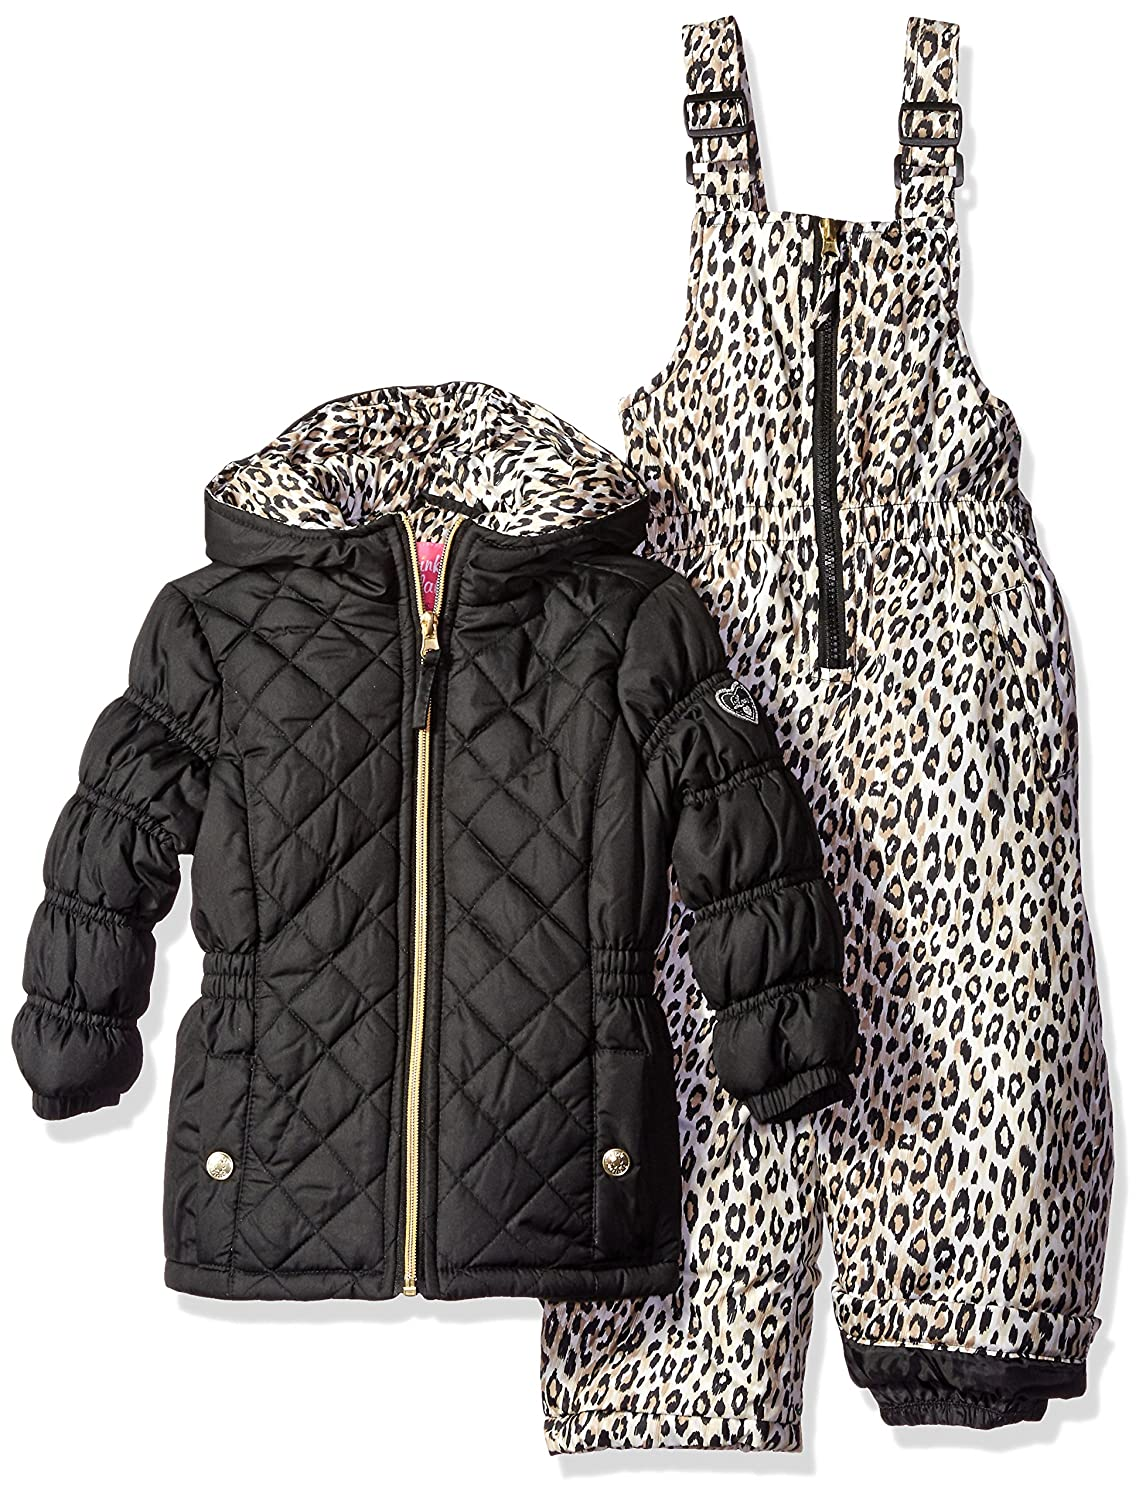 Pink Platinum girls Quilted Snowsuit With Cheetah Print 78390